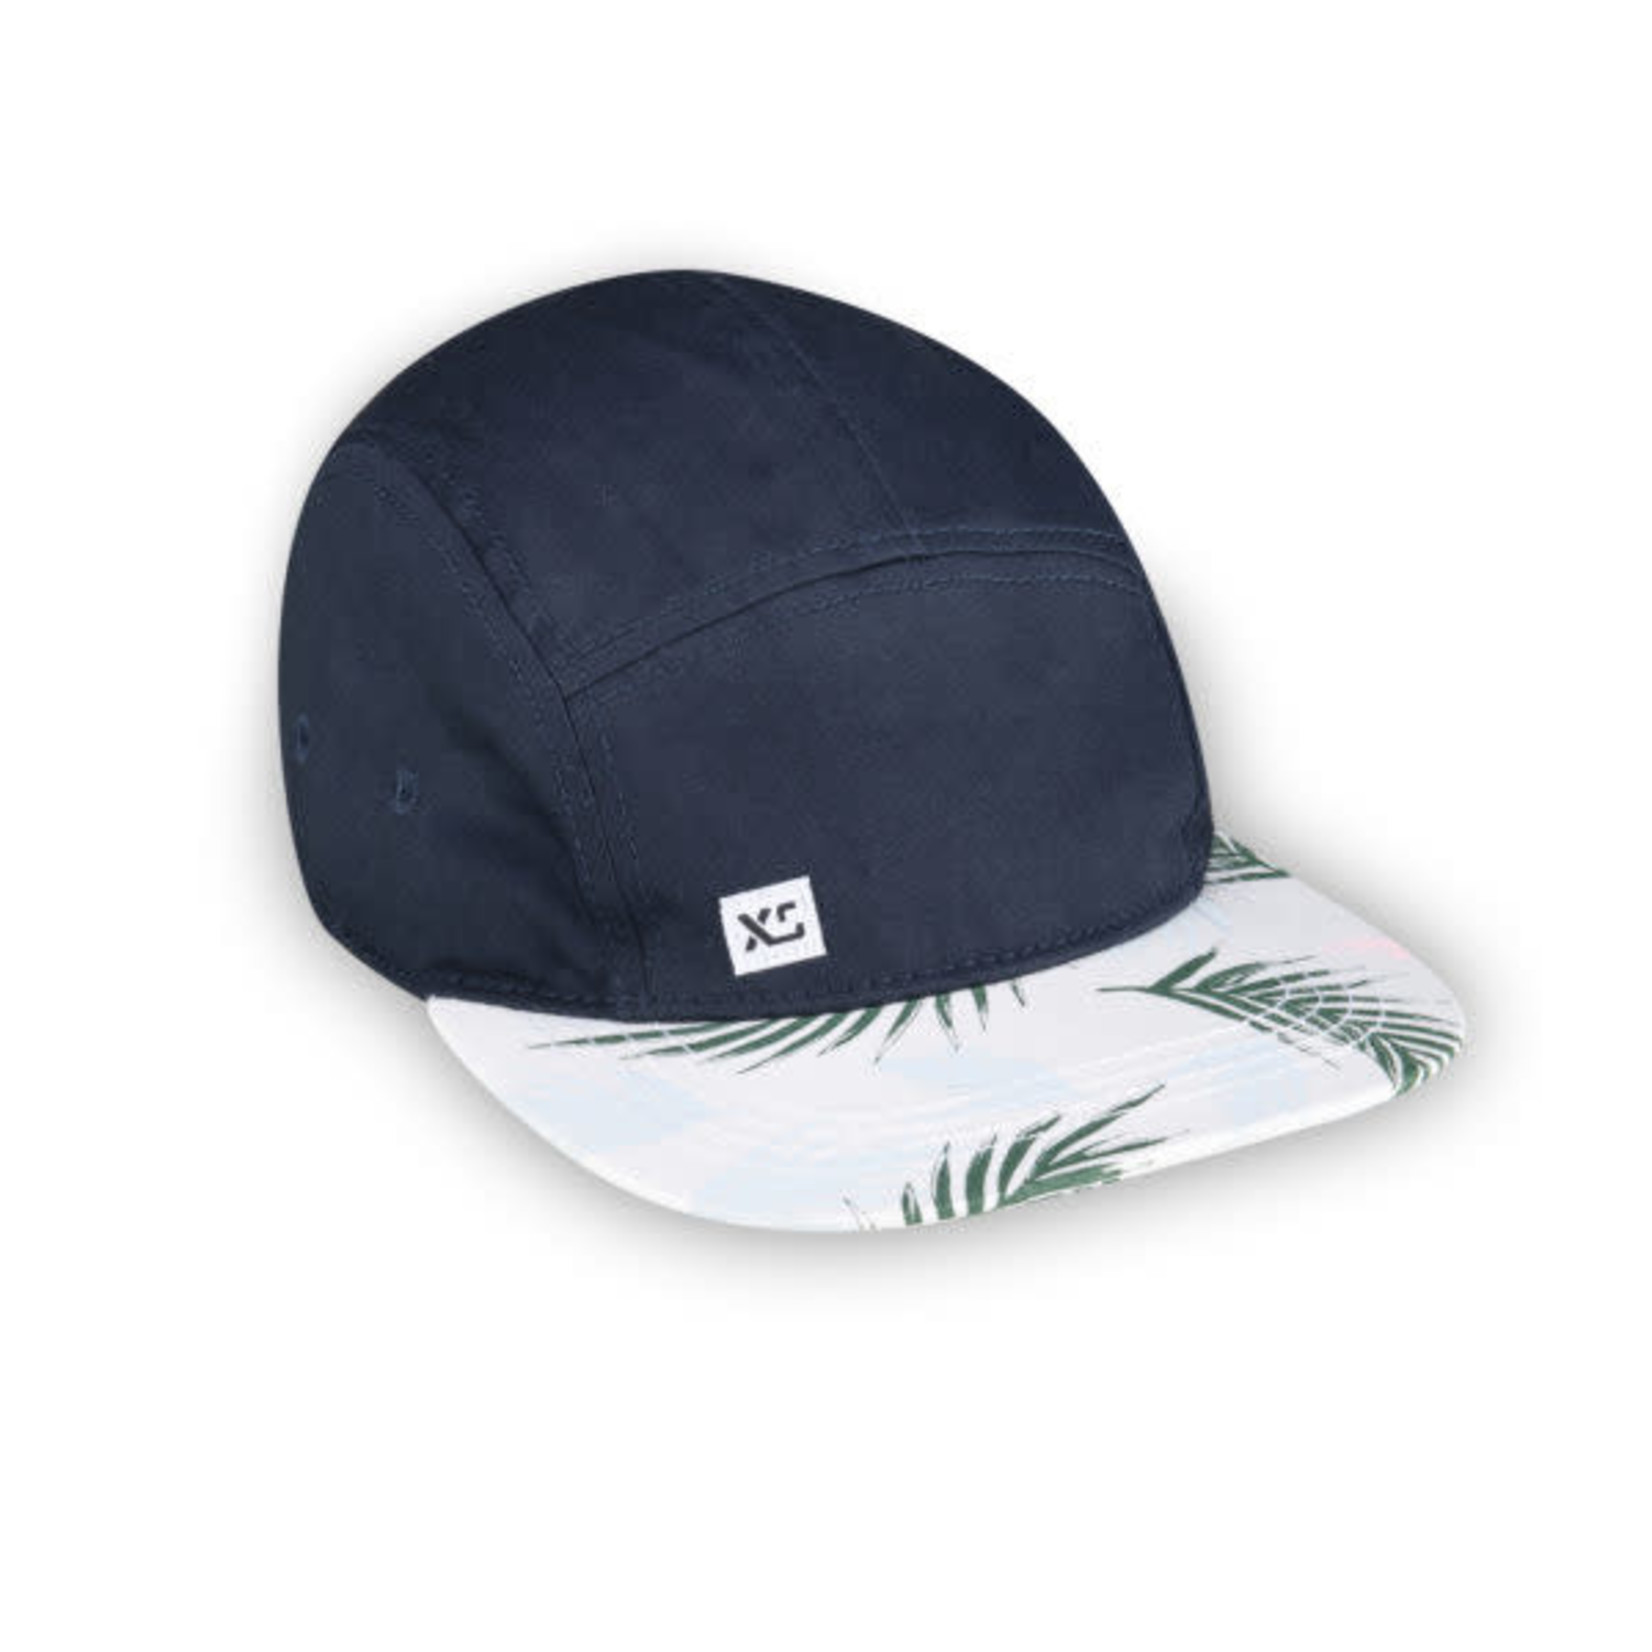 XS Unified XS Unified 5-Panel Hat